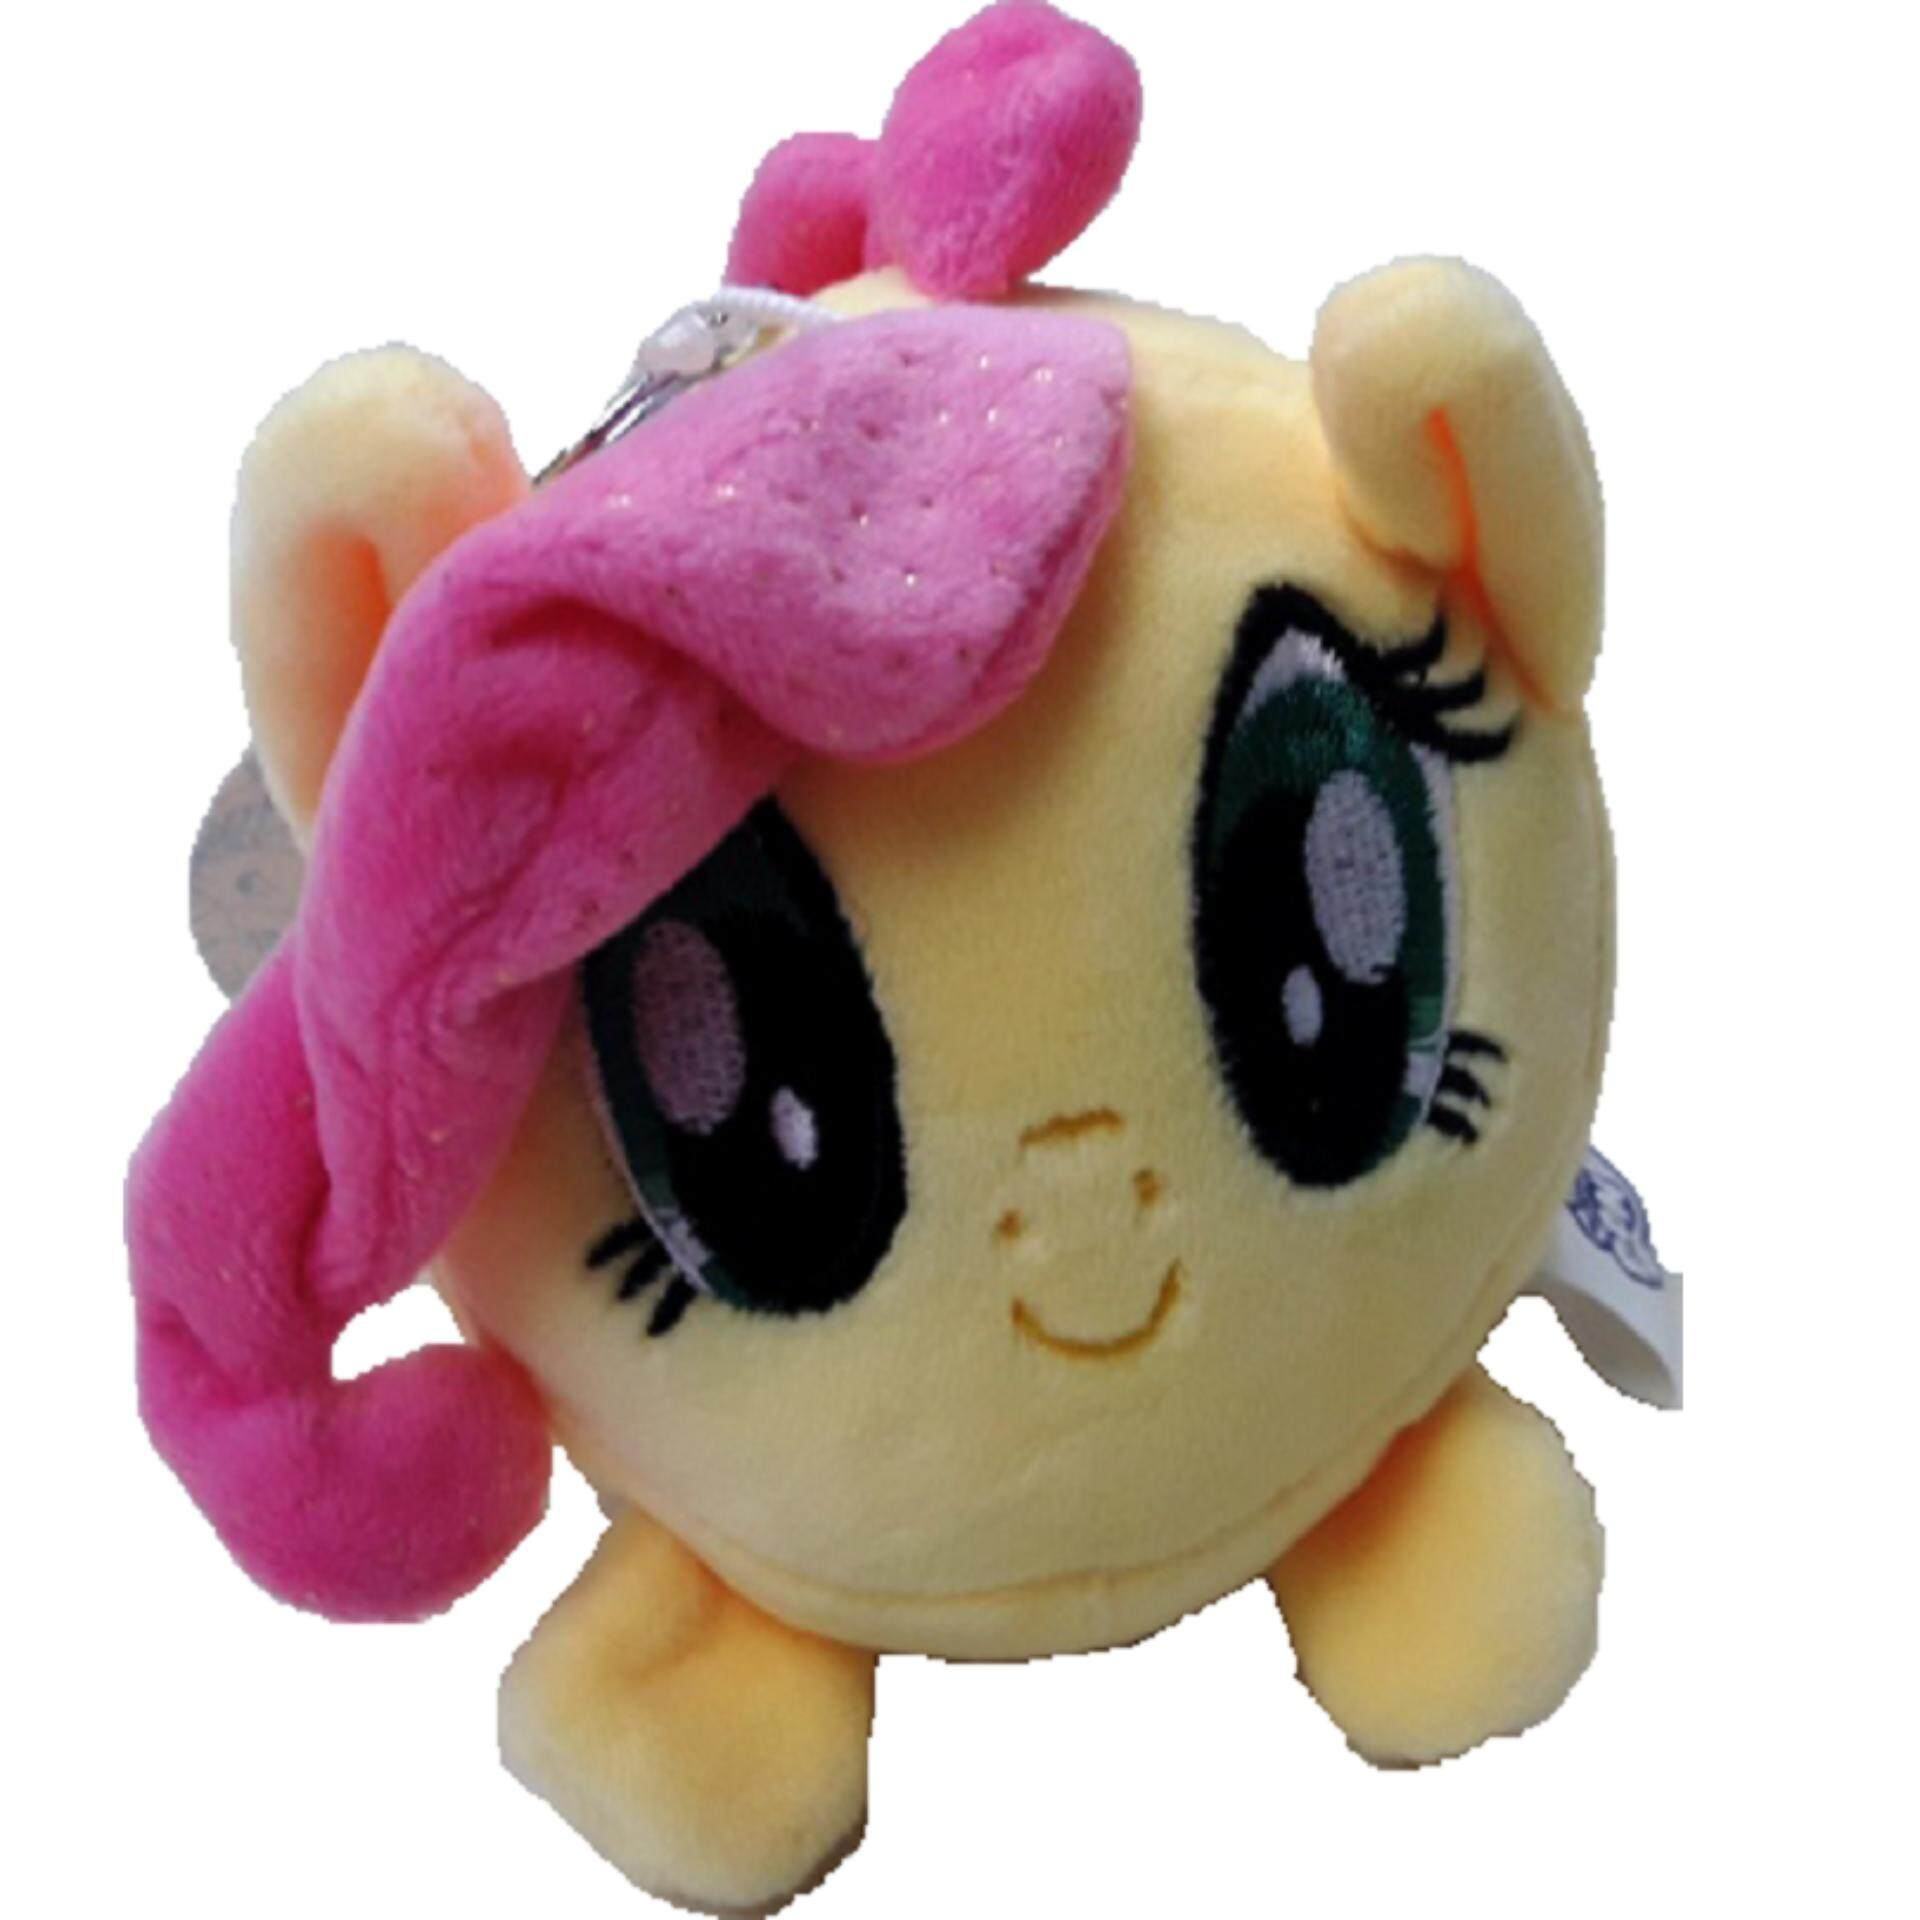 My Little Pony Cutie Plush Toy - Fluttershy toys for girls